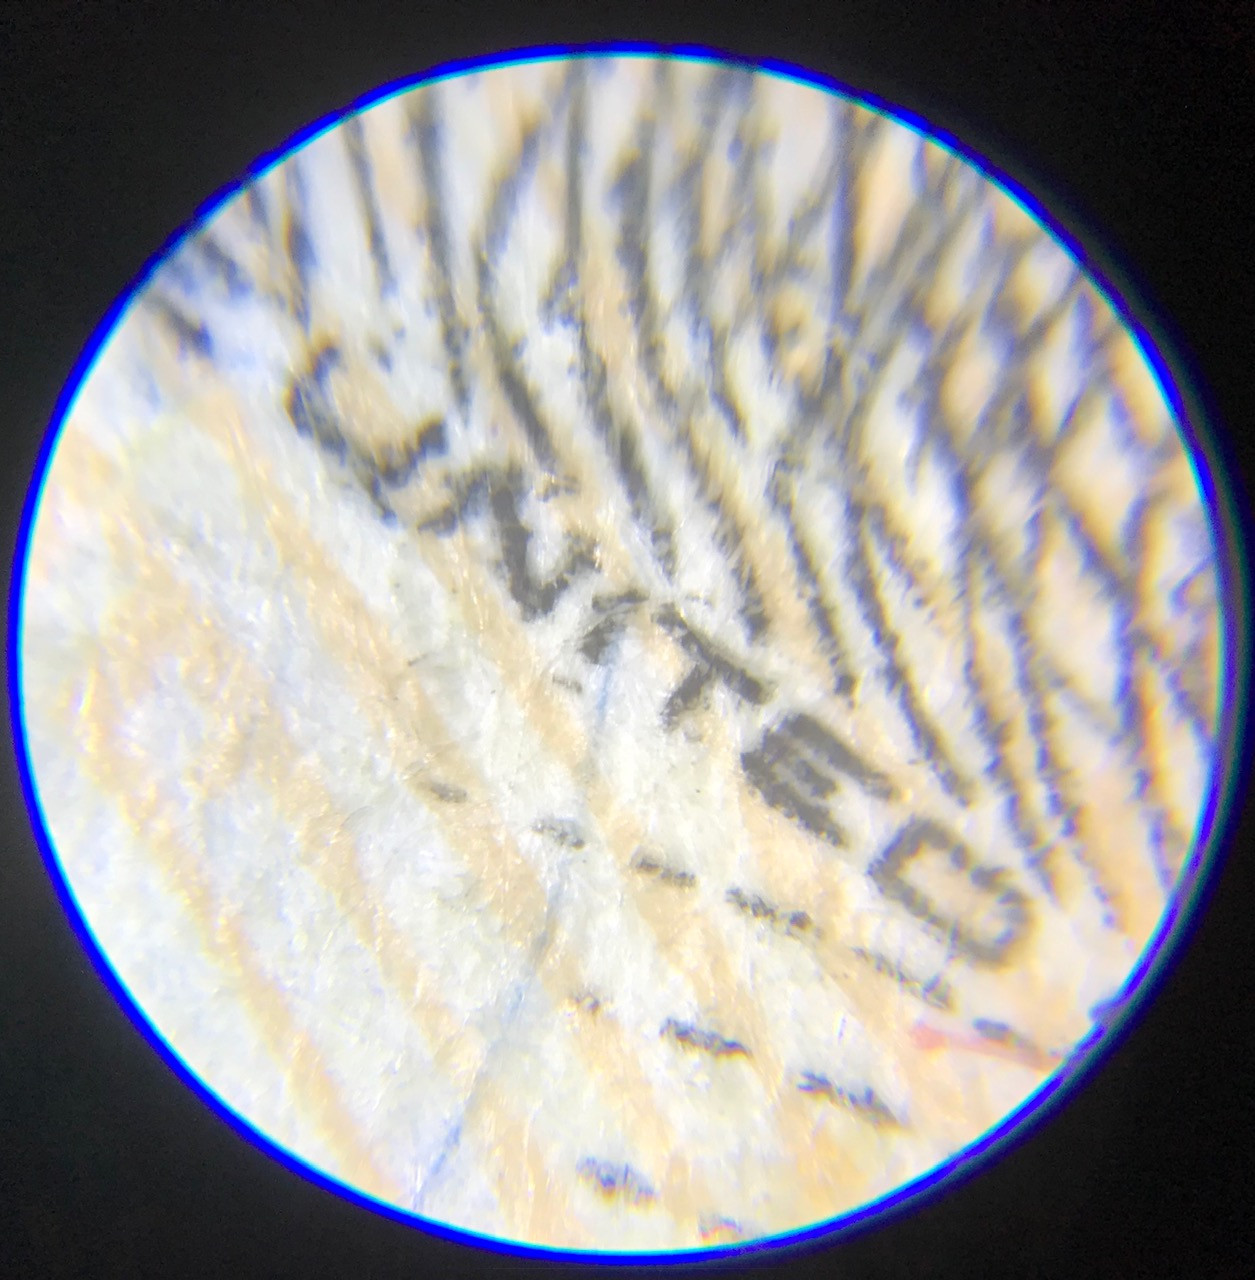 United States $50 bill being inspected using Pocket Microscope Zoom 60X - 100X